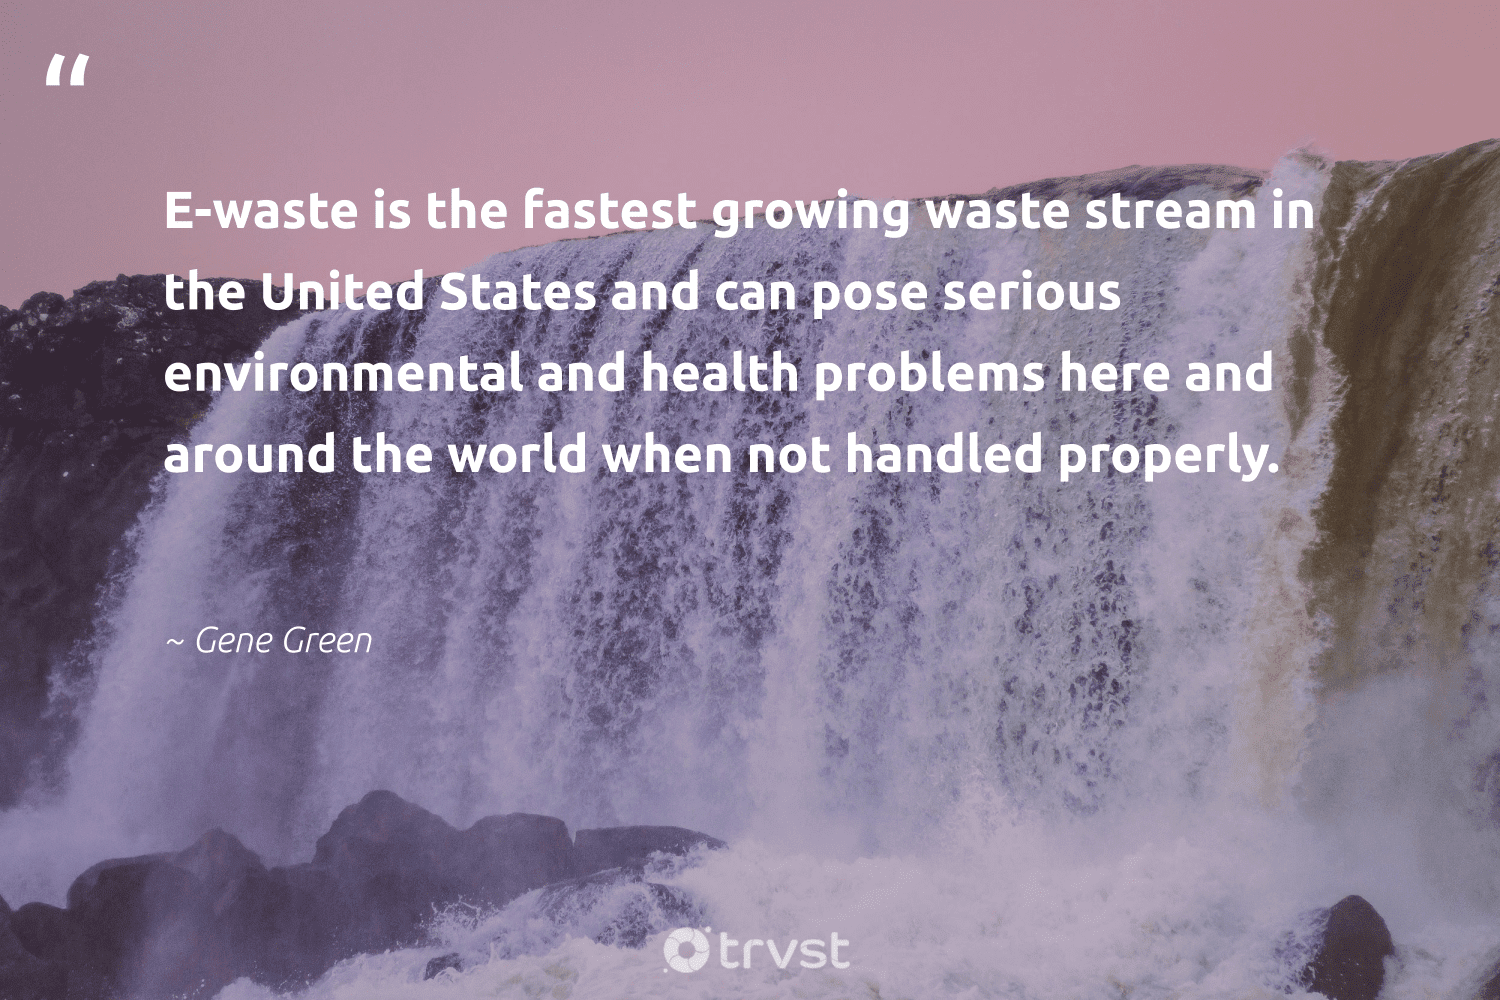 """""""E-waste is the fastest growing waste stream in the United States and can pose serious environmental and health problems here and around the world when not handled properly.""""  - Gene Green #trvst #quotes #waste #environmental #health #wellbeing #gogreen #changemakers #bethechange #healthylife #loveourplanet #begreat"""